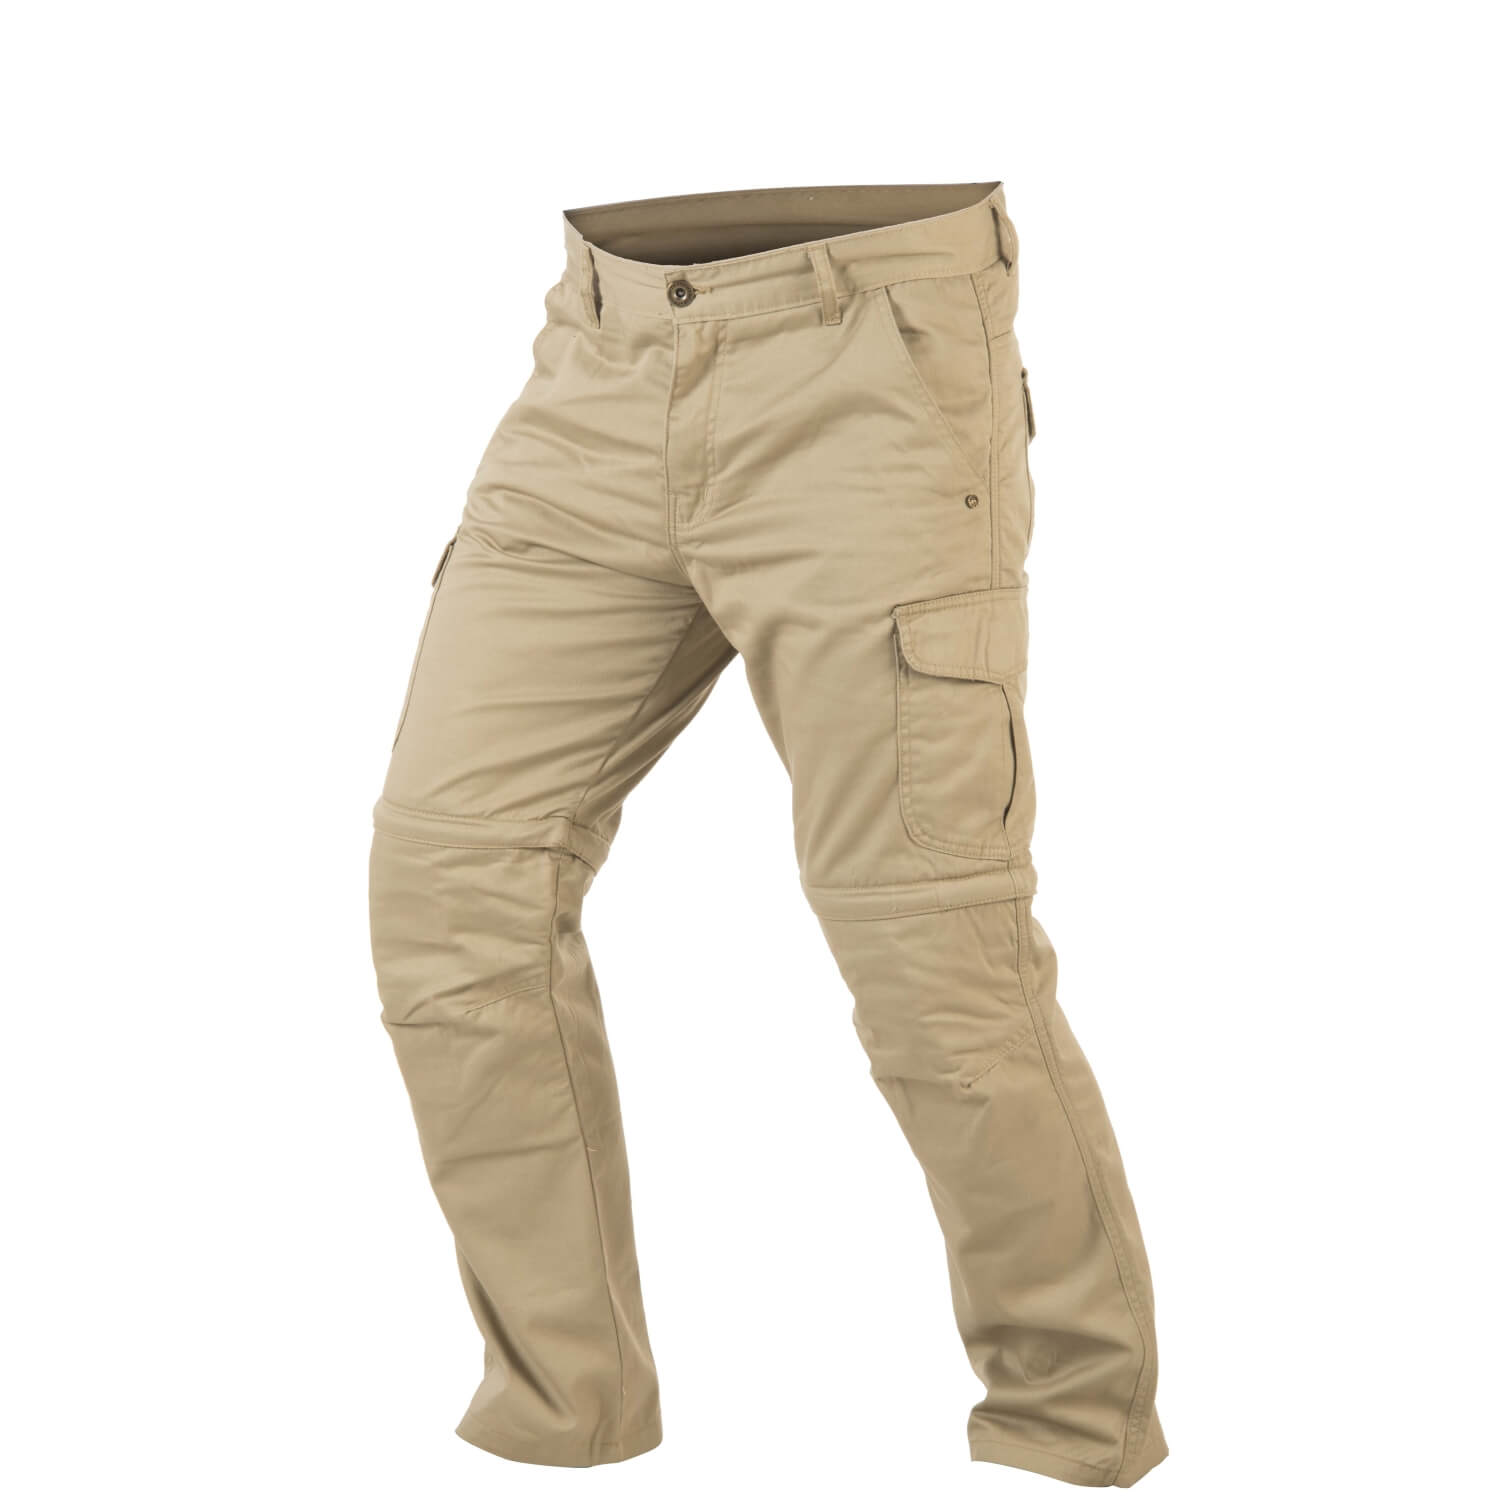 trilobite dual pants herren motorradhose beige. Black Bedroom Furniture Sets. Home Design Ideas